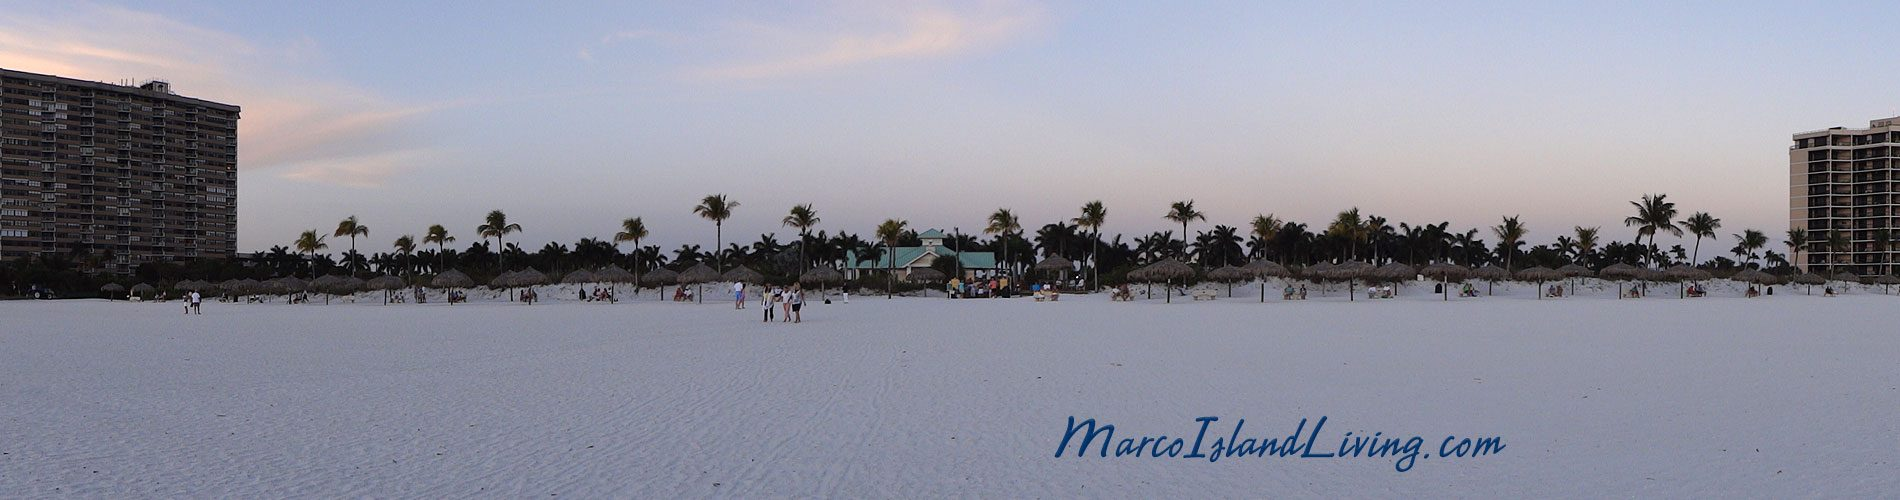 Florida Beach Vacations Gulf Coast Beaches on Marco Island